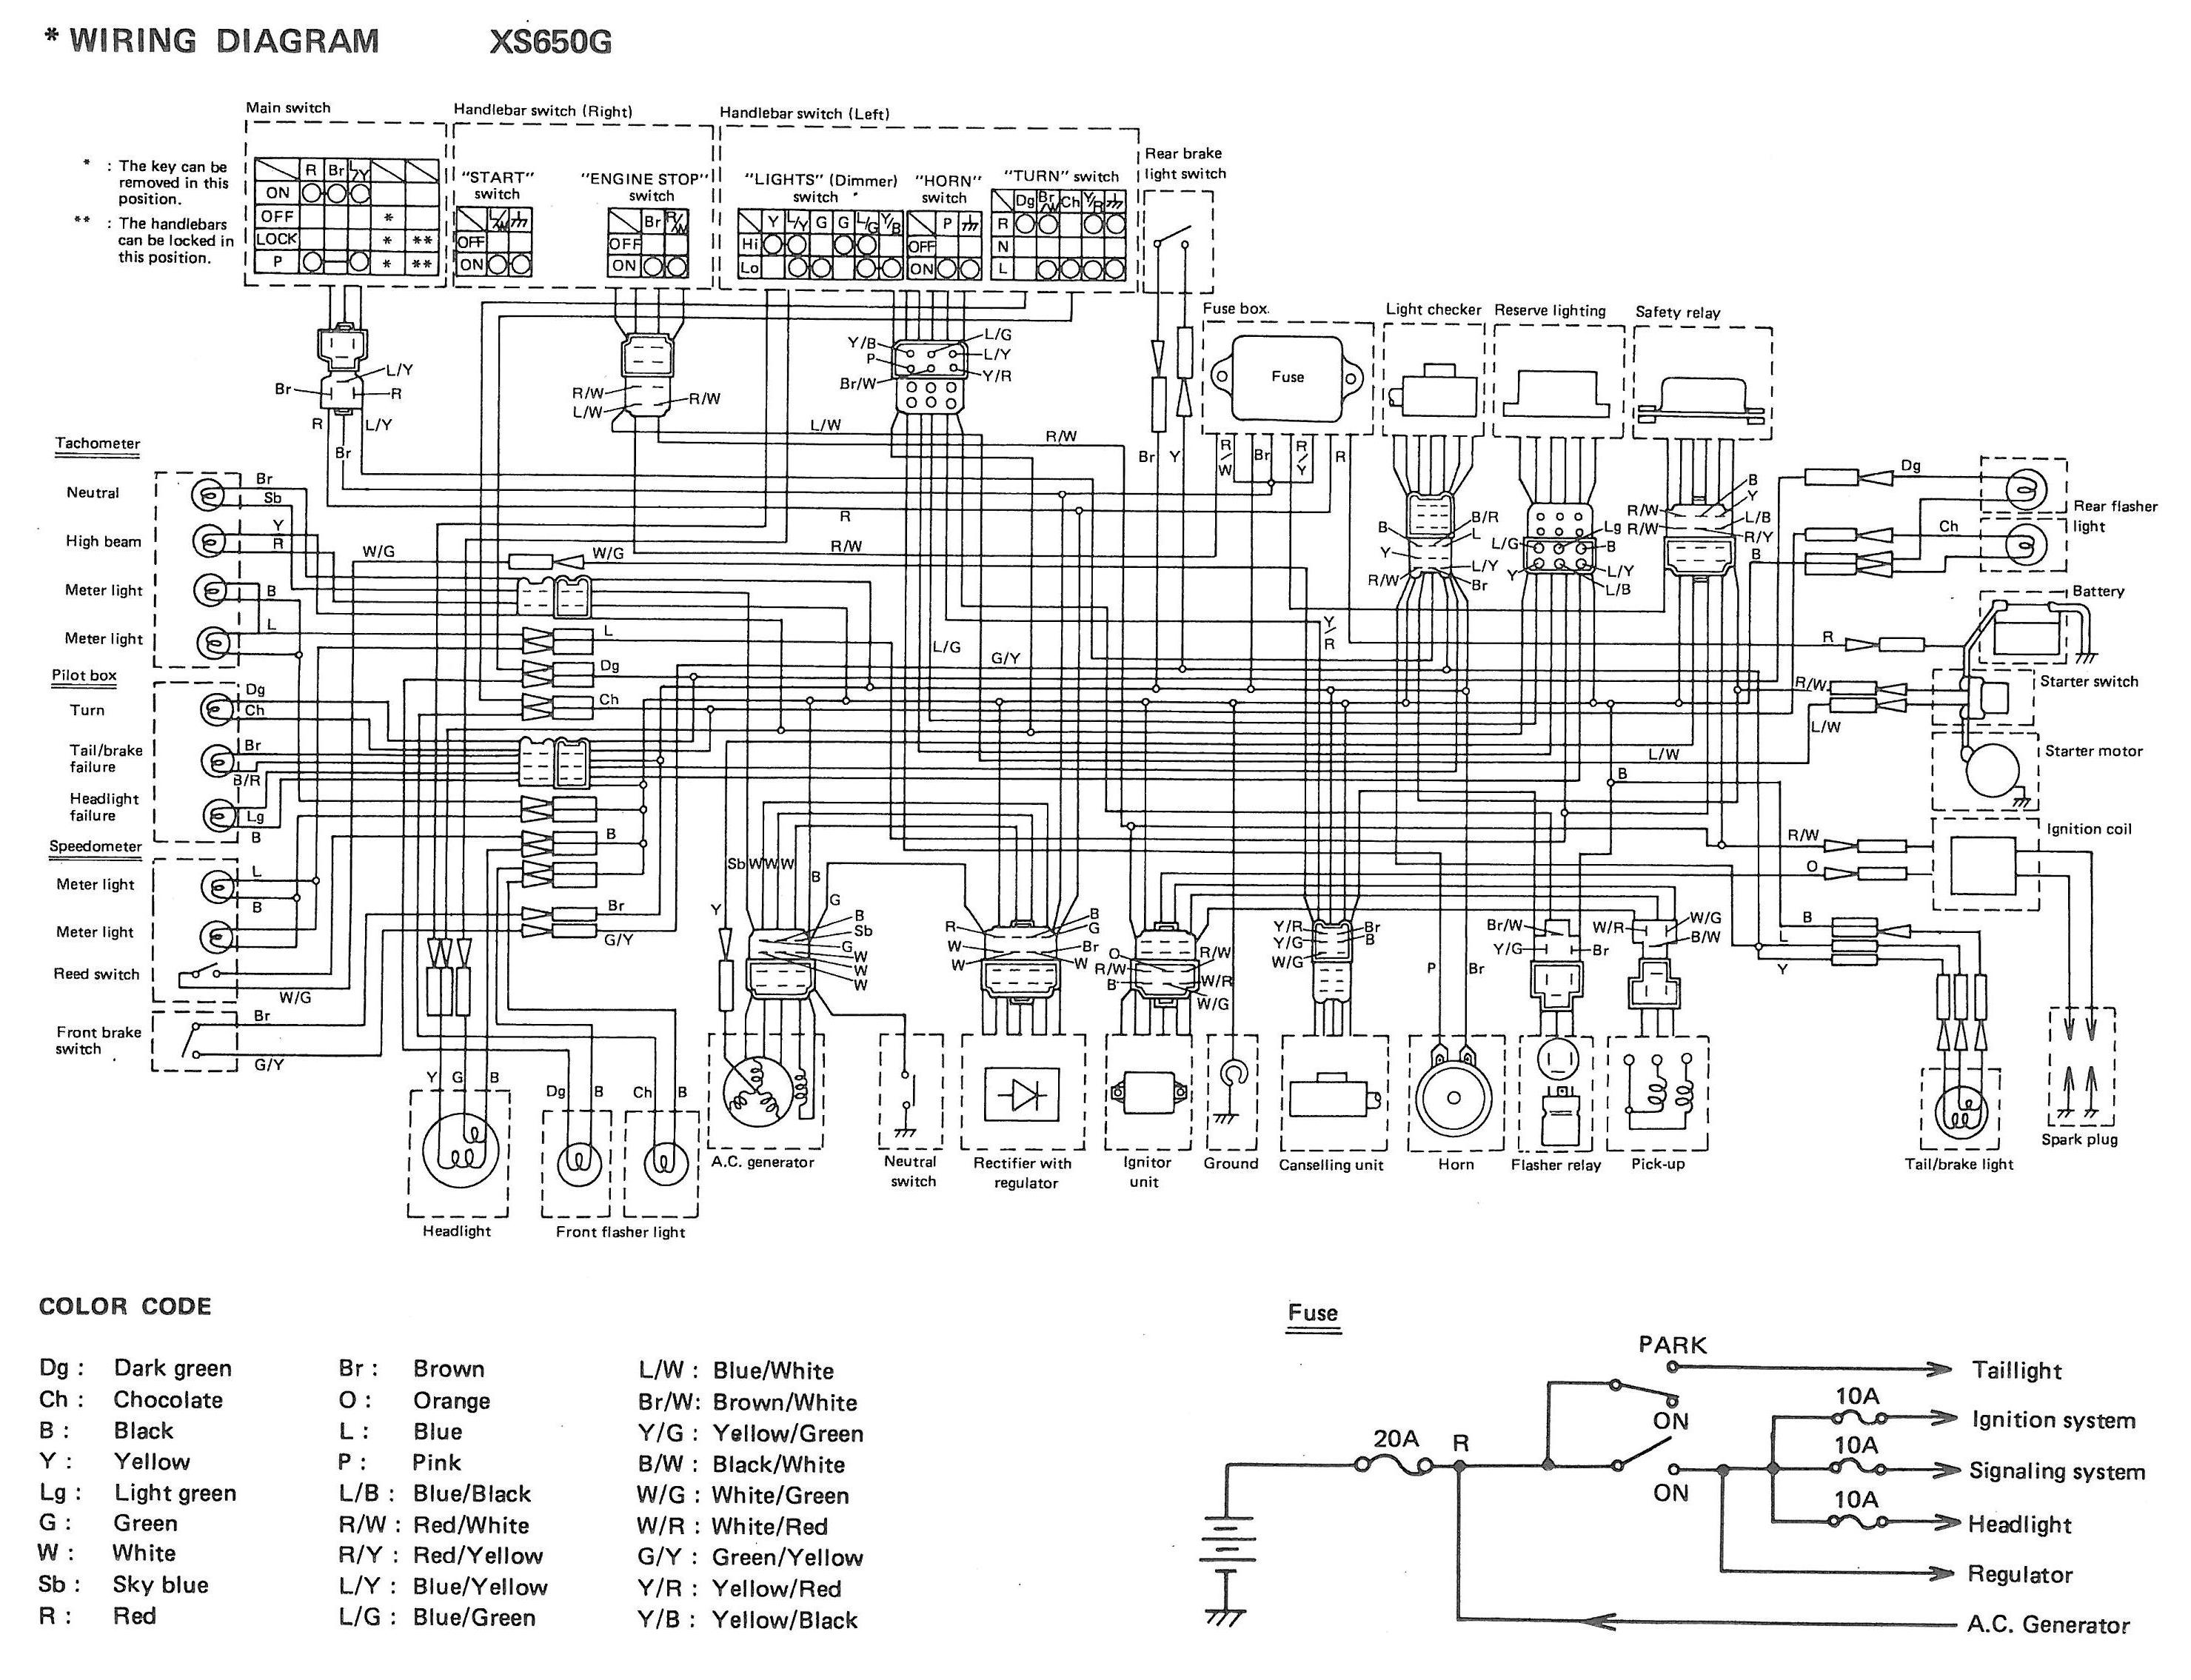 xs650 80 xs650g and sg wiring diagrams thexscafe rh thexscafedotcom wordpress com Goodall Start All Wiring Diagram Yamaha Electric Guitar Wiring Schematic